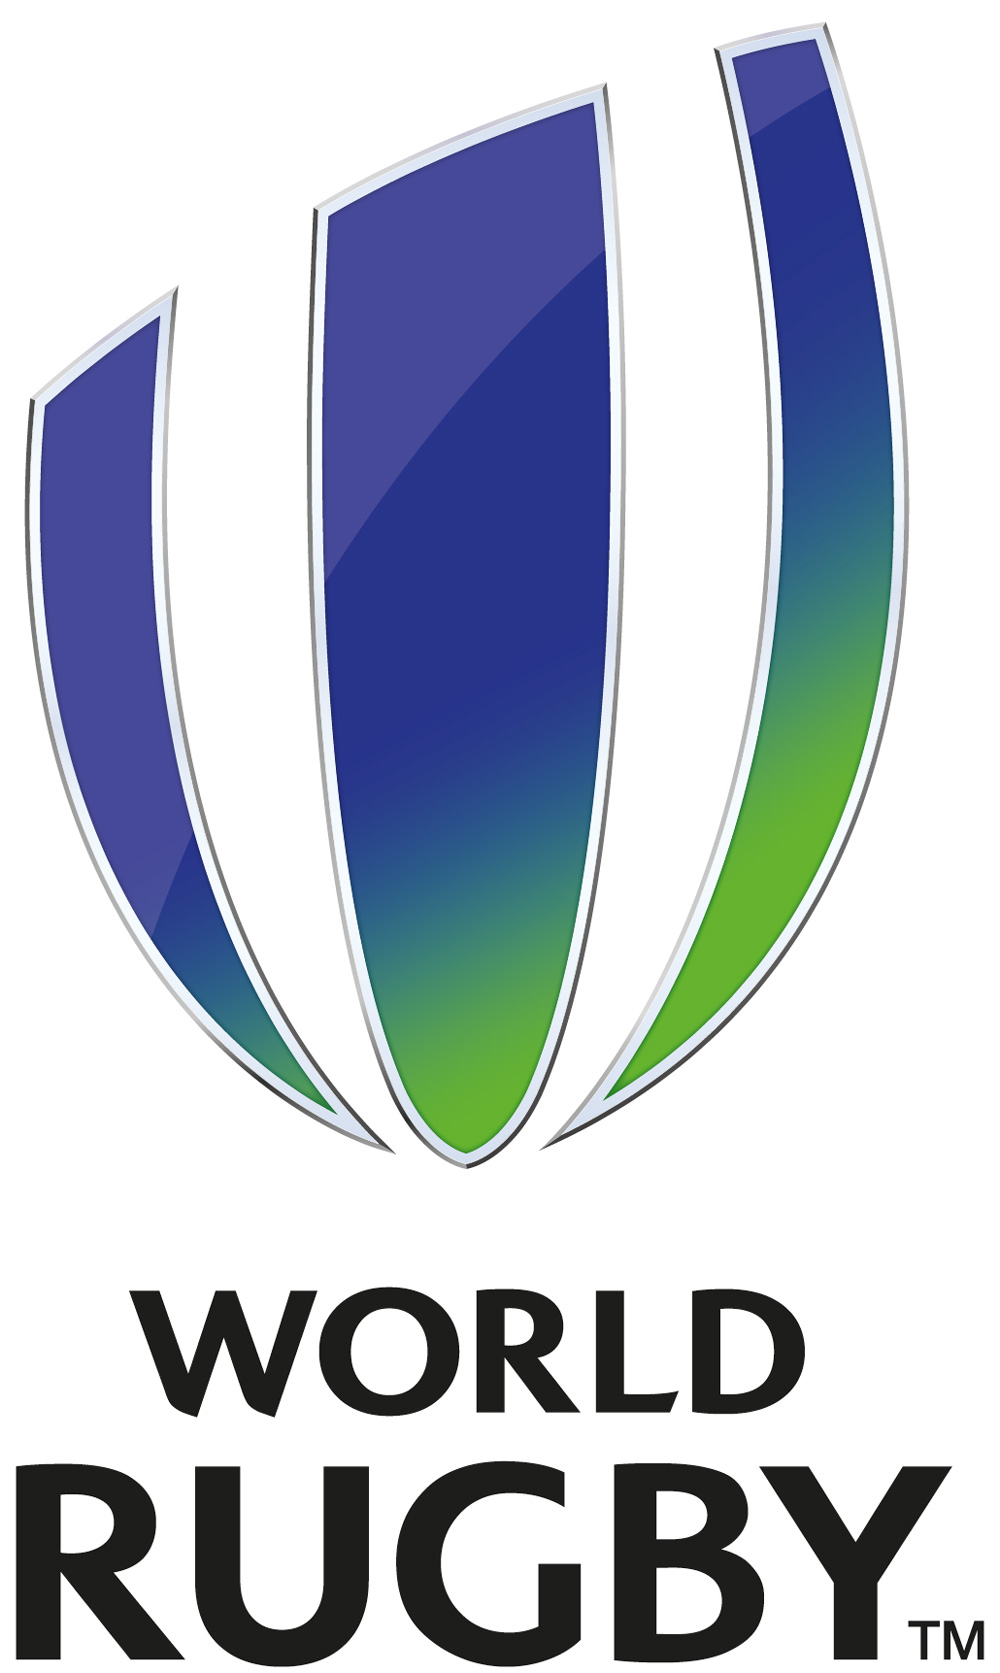 New Name and Logo for World Rugby by Futurebrand